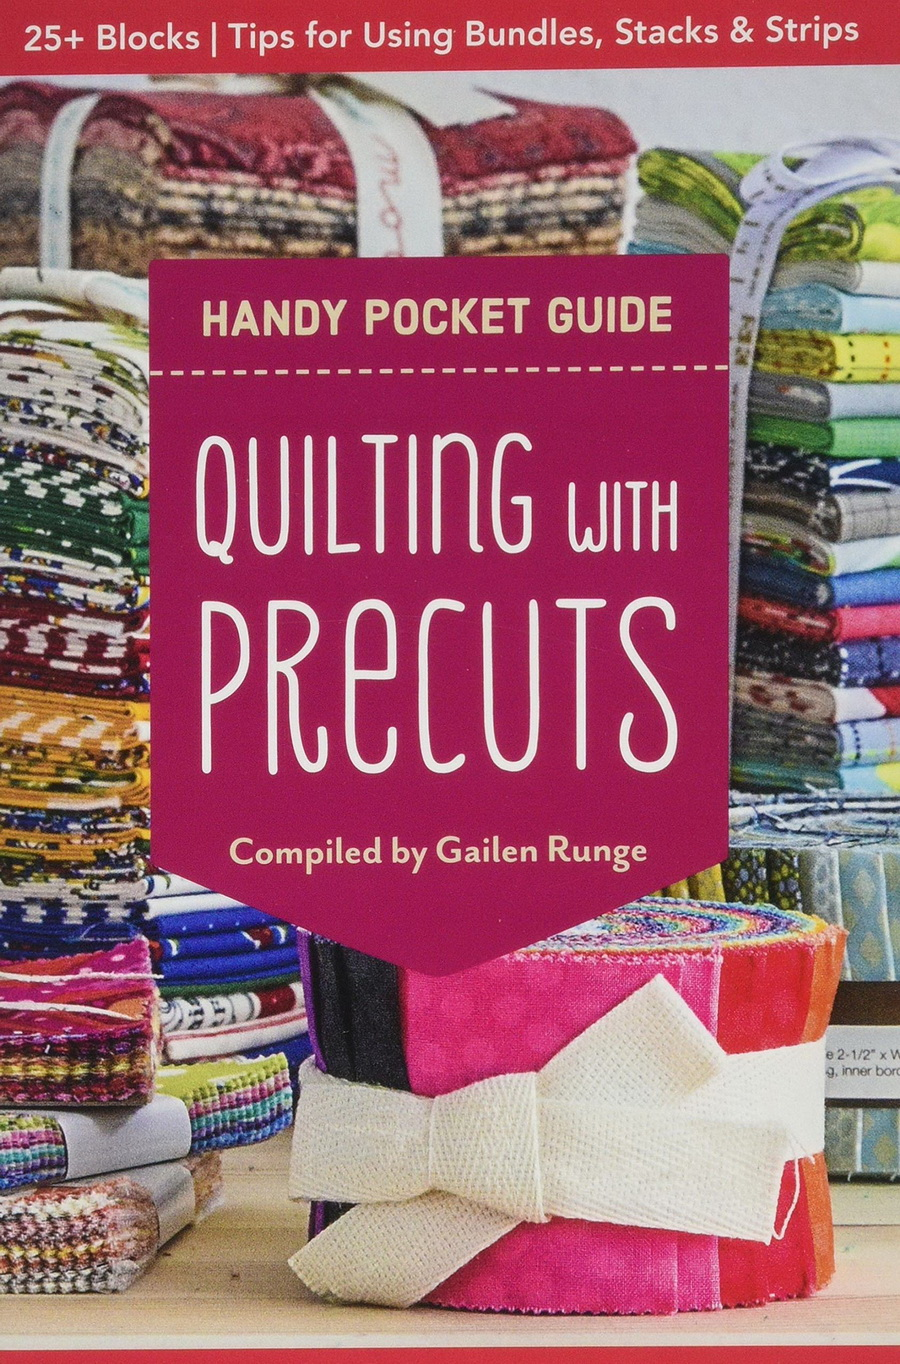 Quilting with Precuts Handy Pocket Guide: 25+ Blocks • Tips for Using Bundles, Stacks & Strips